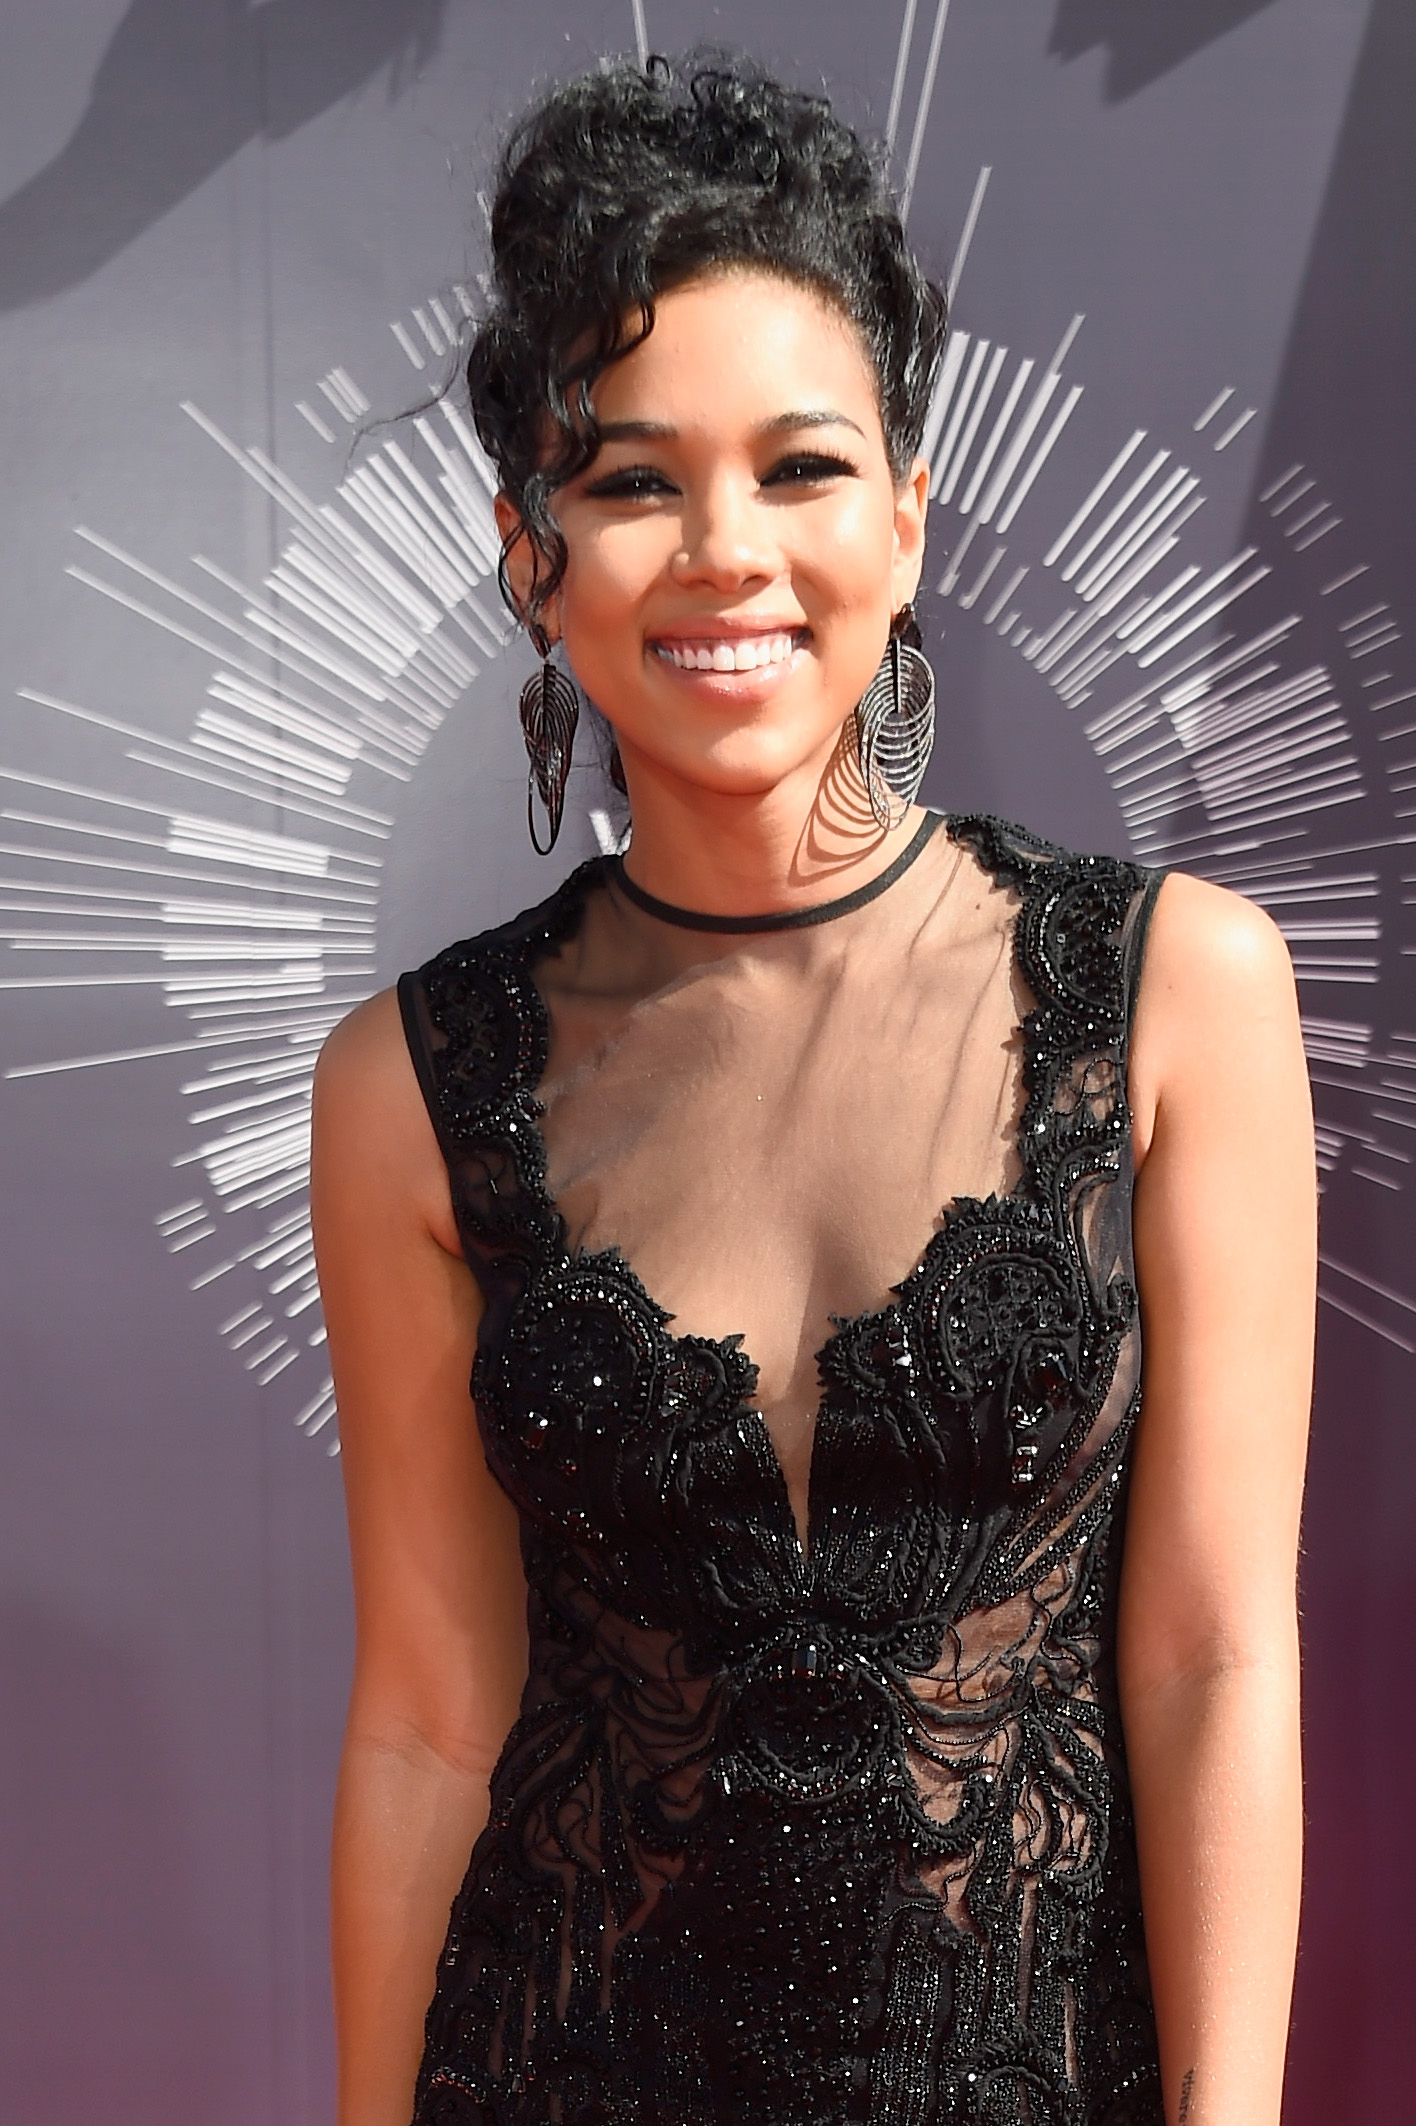 Aaliyah Lifetime Movie Actress: Alexandra Shipp Opens Up About Backlash After Taking On Role, 'It's Hard' [VIDEO] : Videos : Enstarz‎